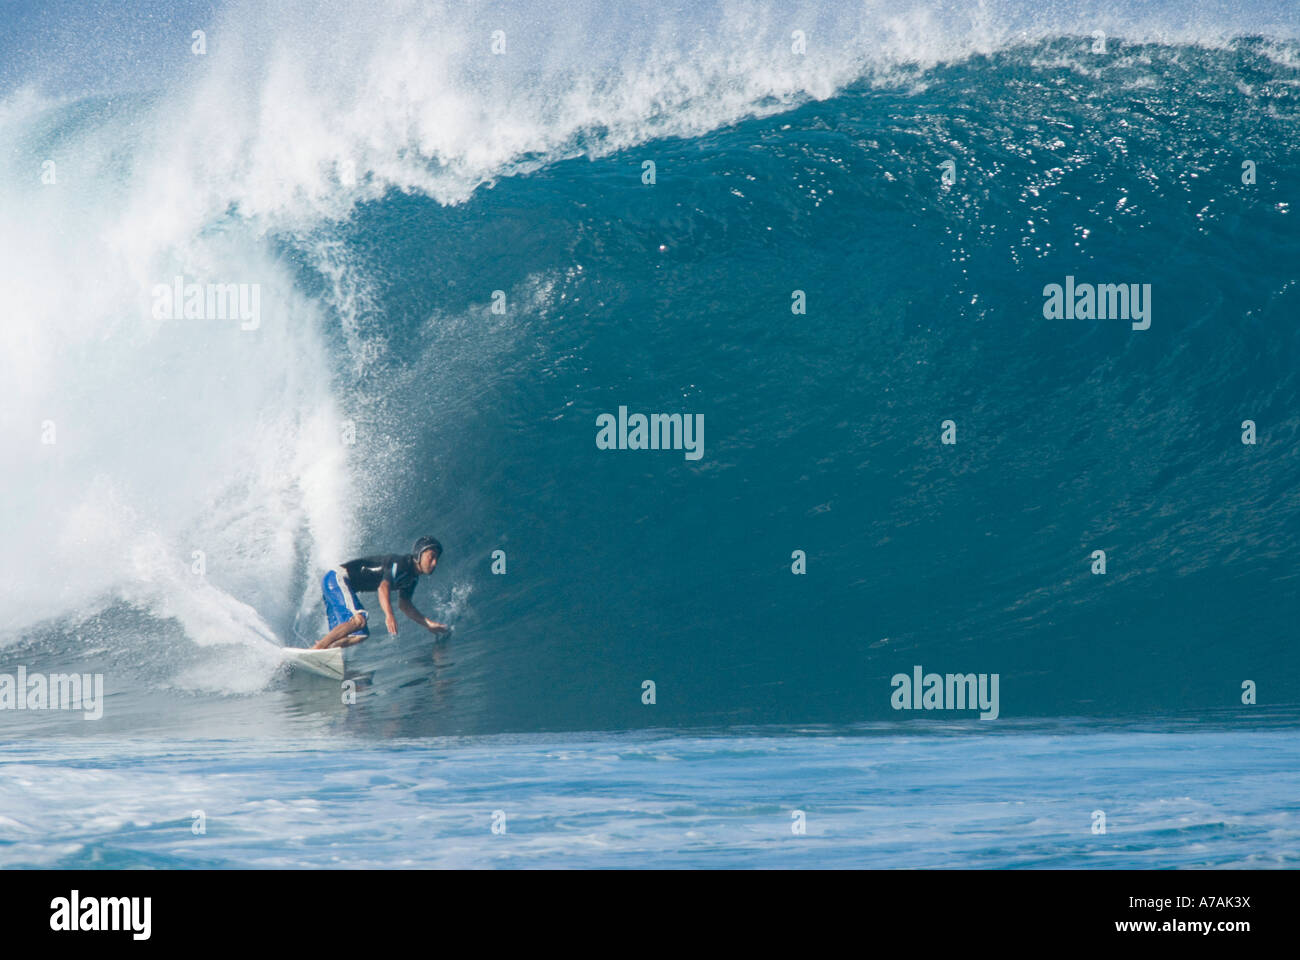 37127106d7 Surfing at Pipeline